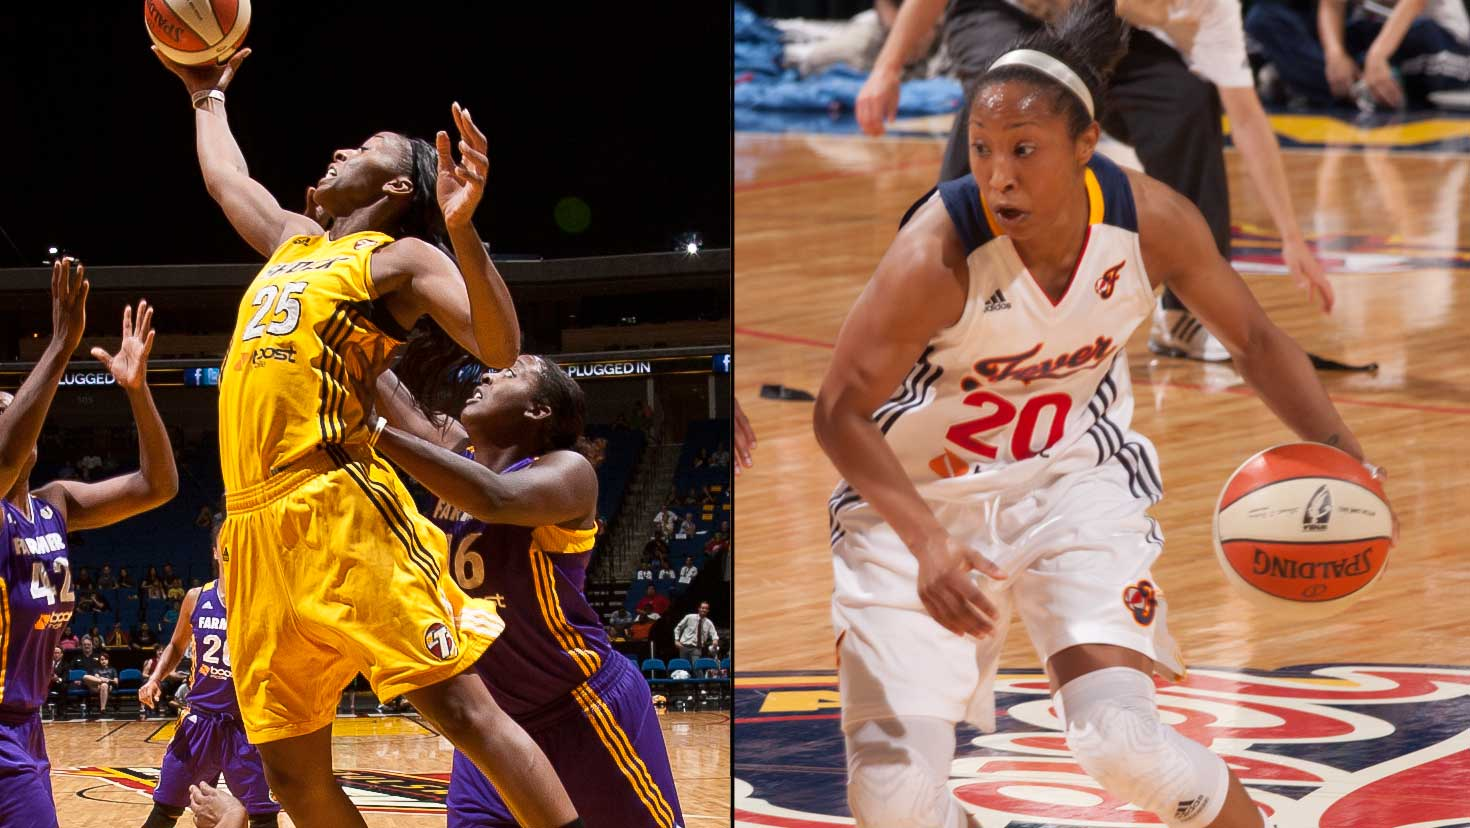 Dishin & Swishin 9/13/12 Podcast: Briann January leads the Fever into the playoffs, Glory Johnson leads the Shock by example